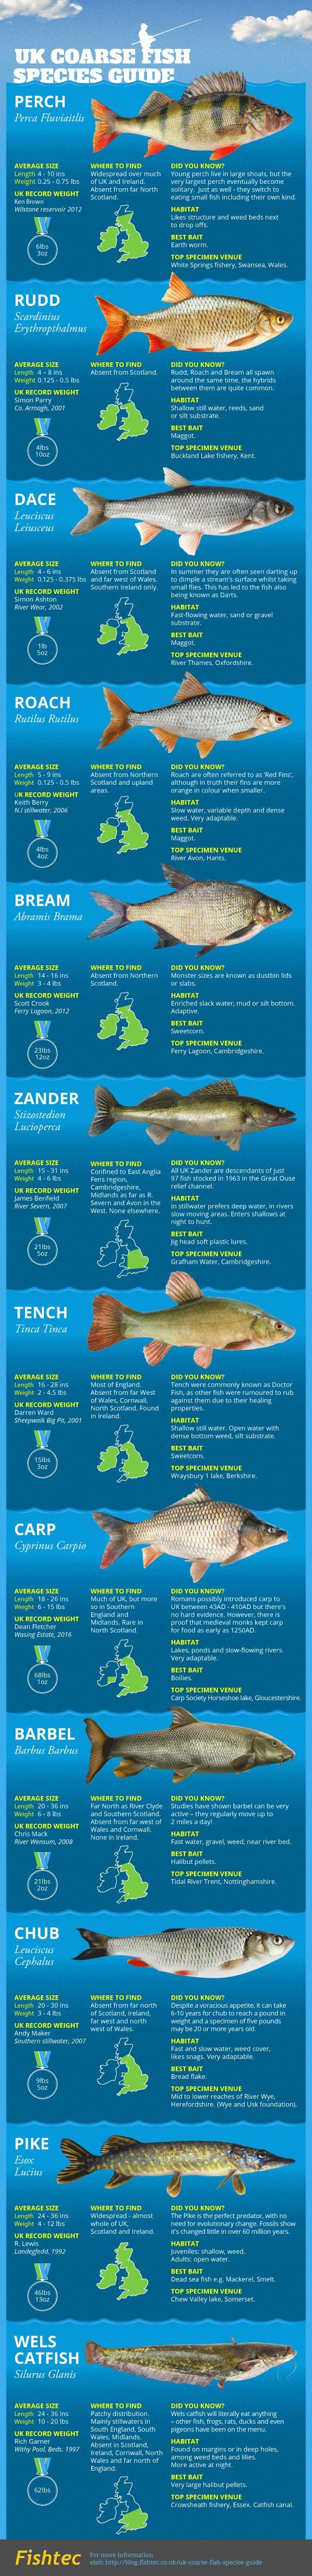 Freshwater fish facts - Uk Coarse Fish Species Guide Infographic